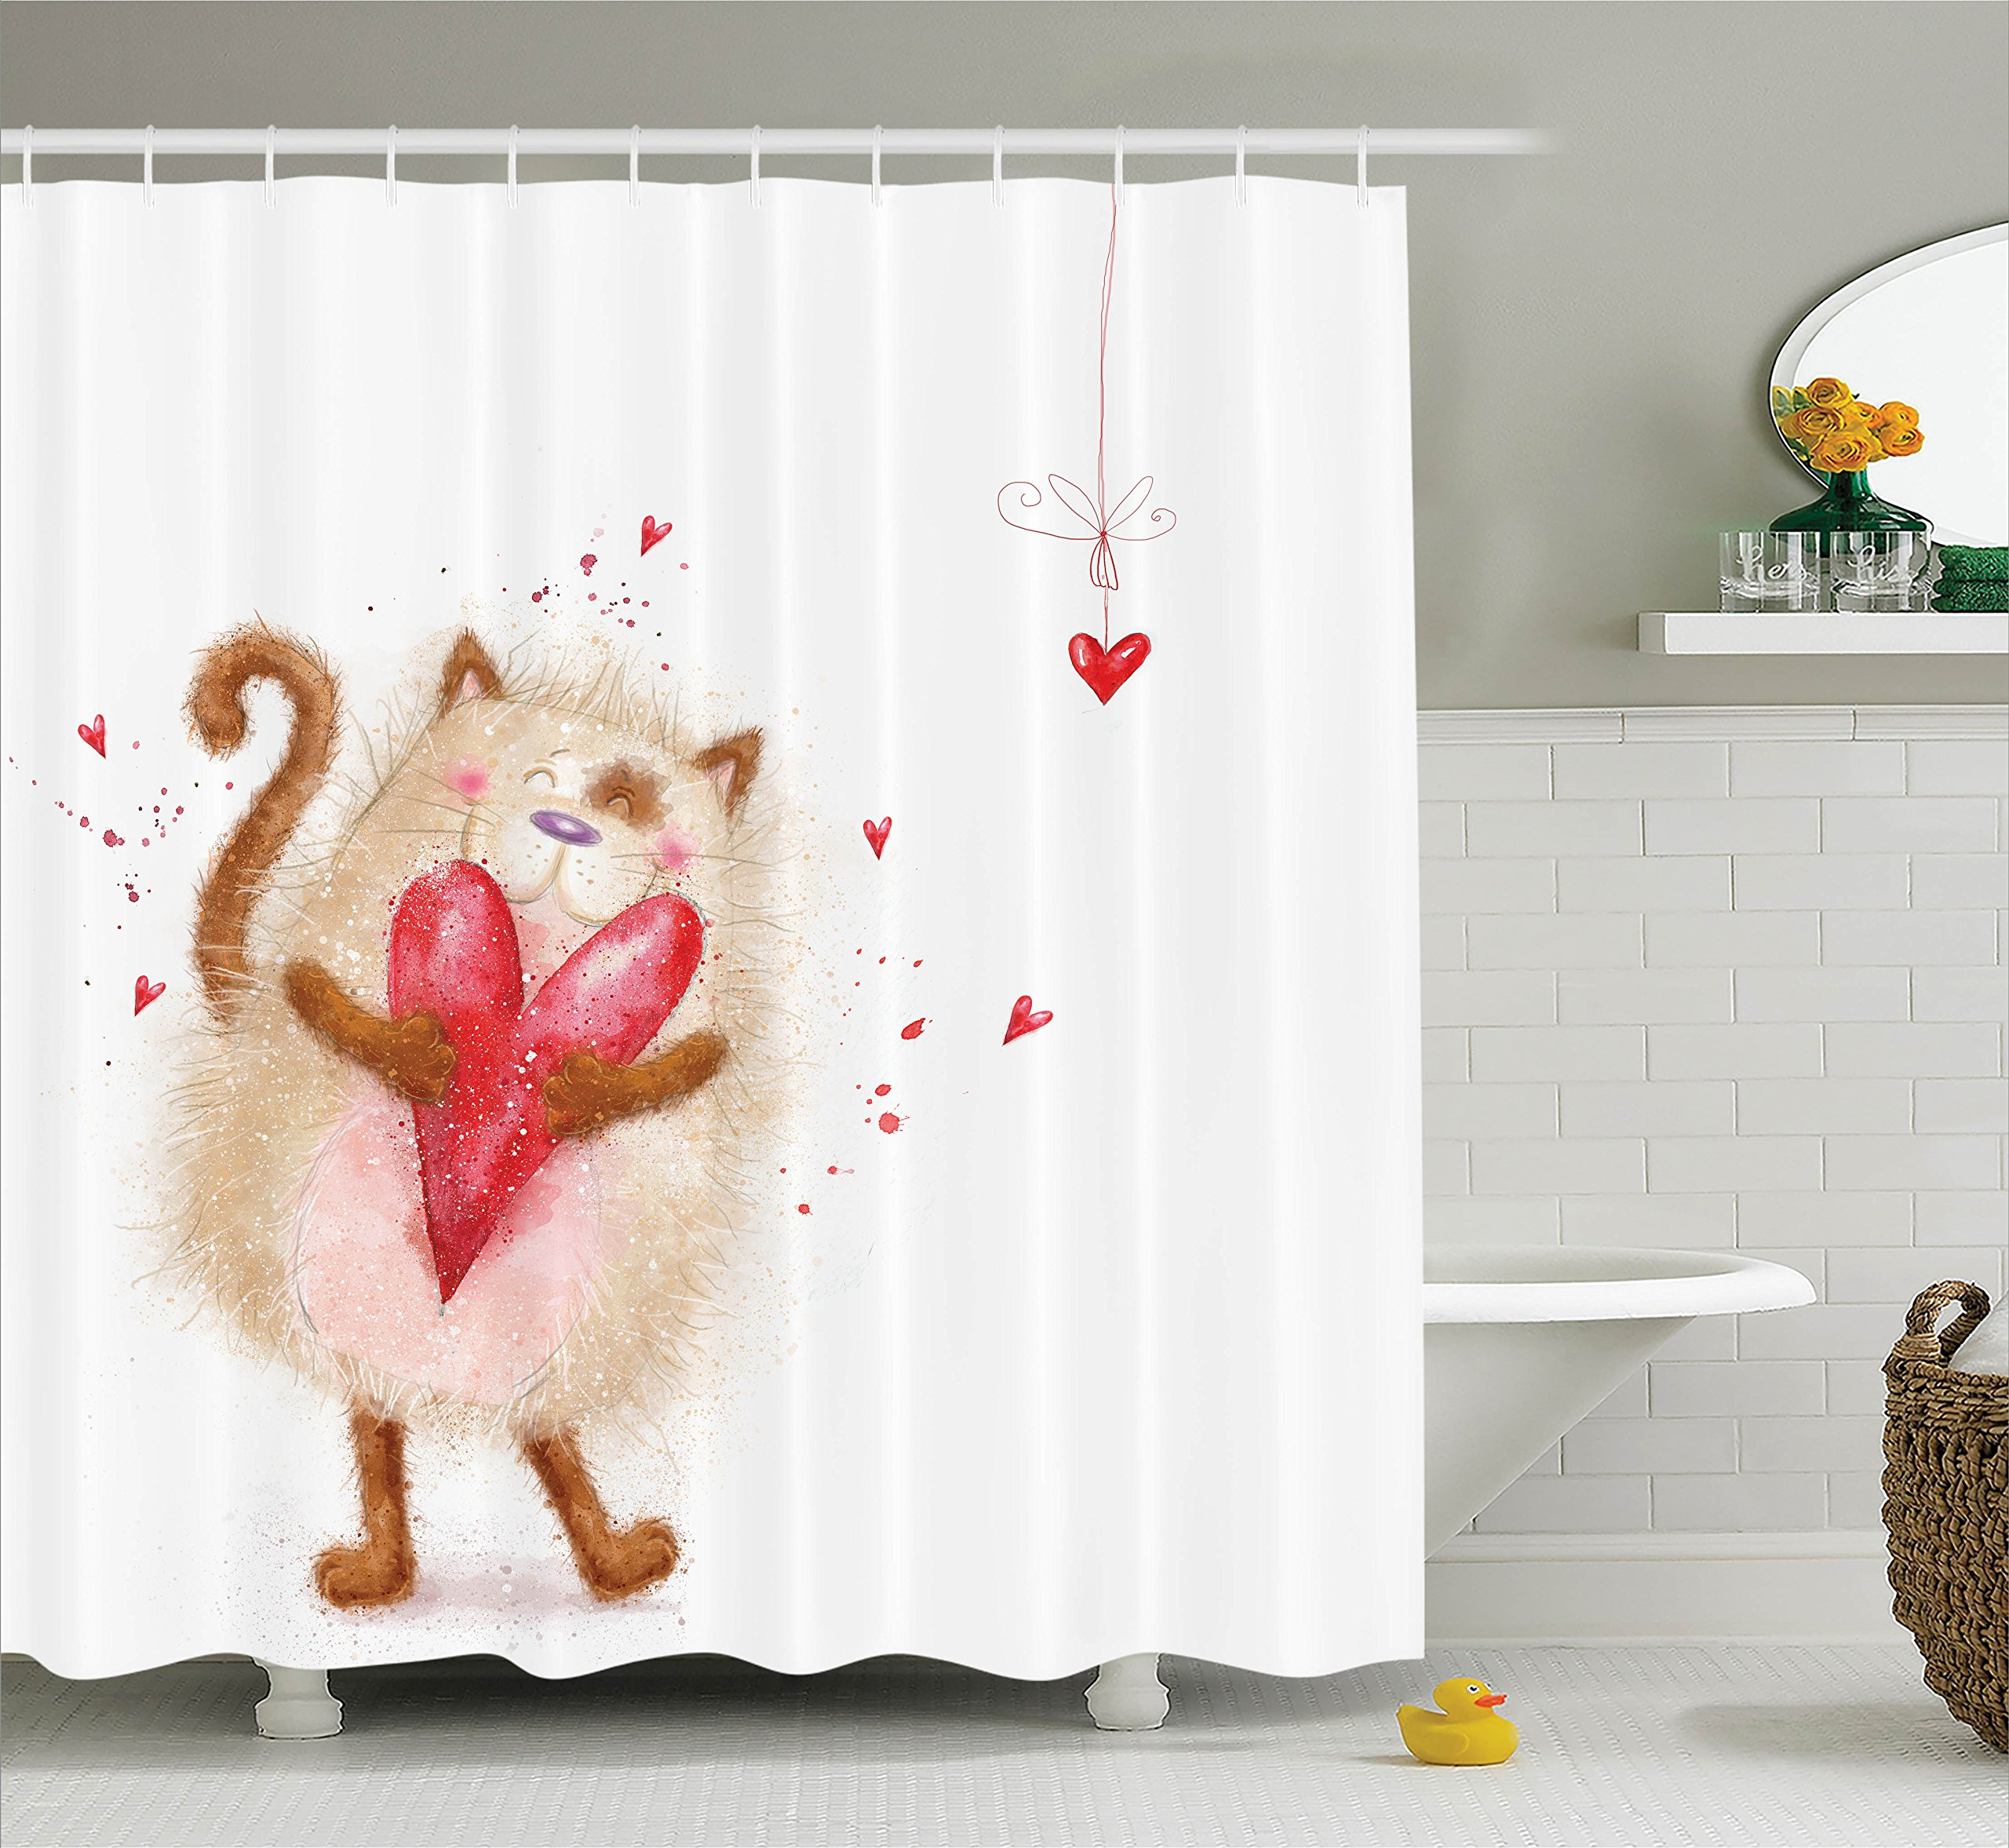 Ambesonne Love Decor Collection, Love Cute Cat with Heart in Love Valentines Honeymoon Smile Joyful Cheering Design, Polyester Fabric Bathroom Shower Curtain Set with Hooks, Brown Red White